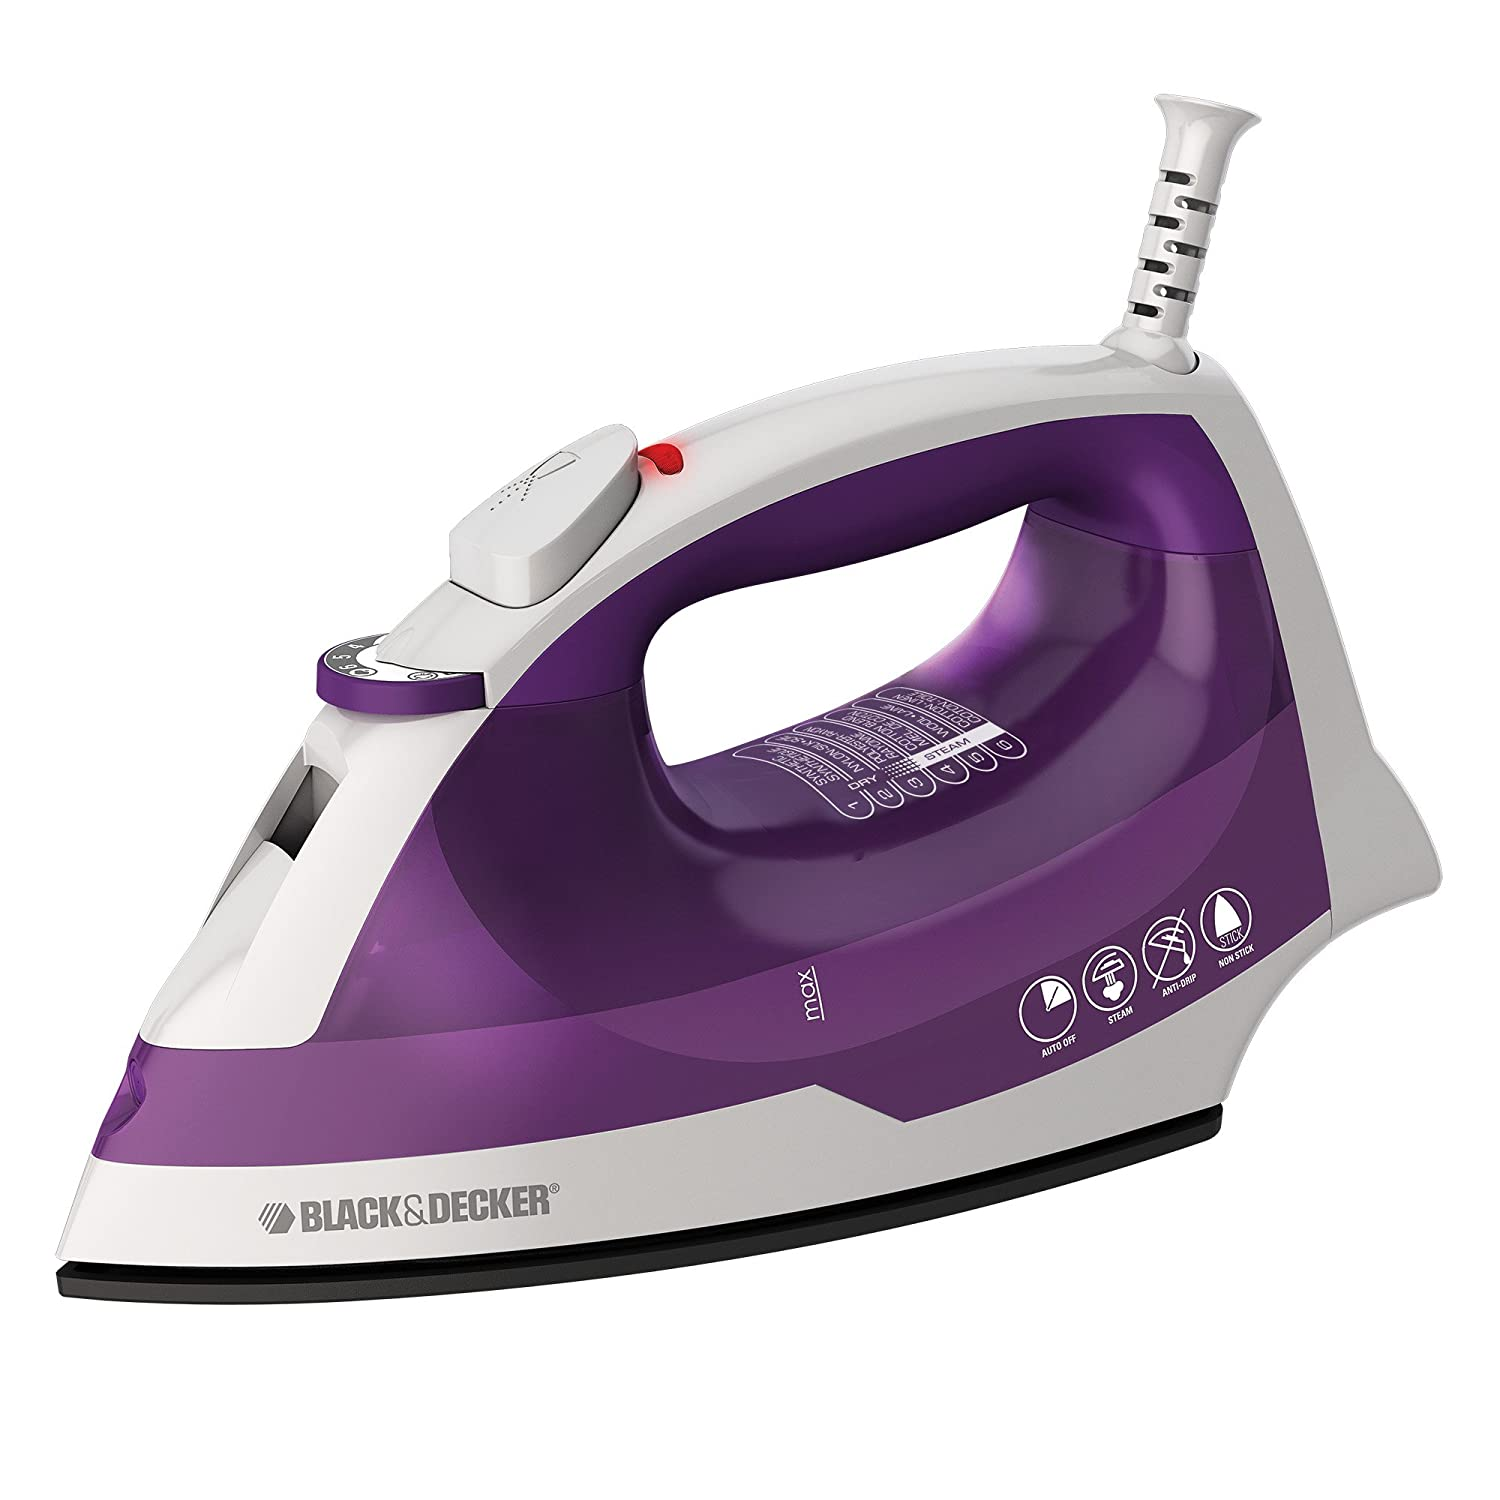 BLACK+DECKER Steam Iron, Green, IR06XC Black & Decker